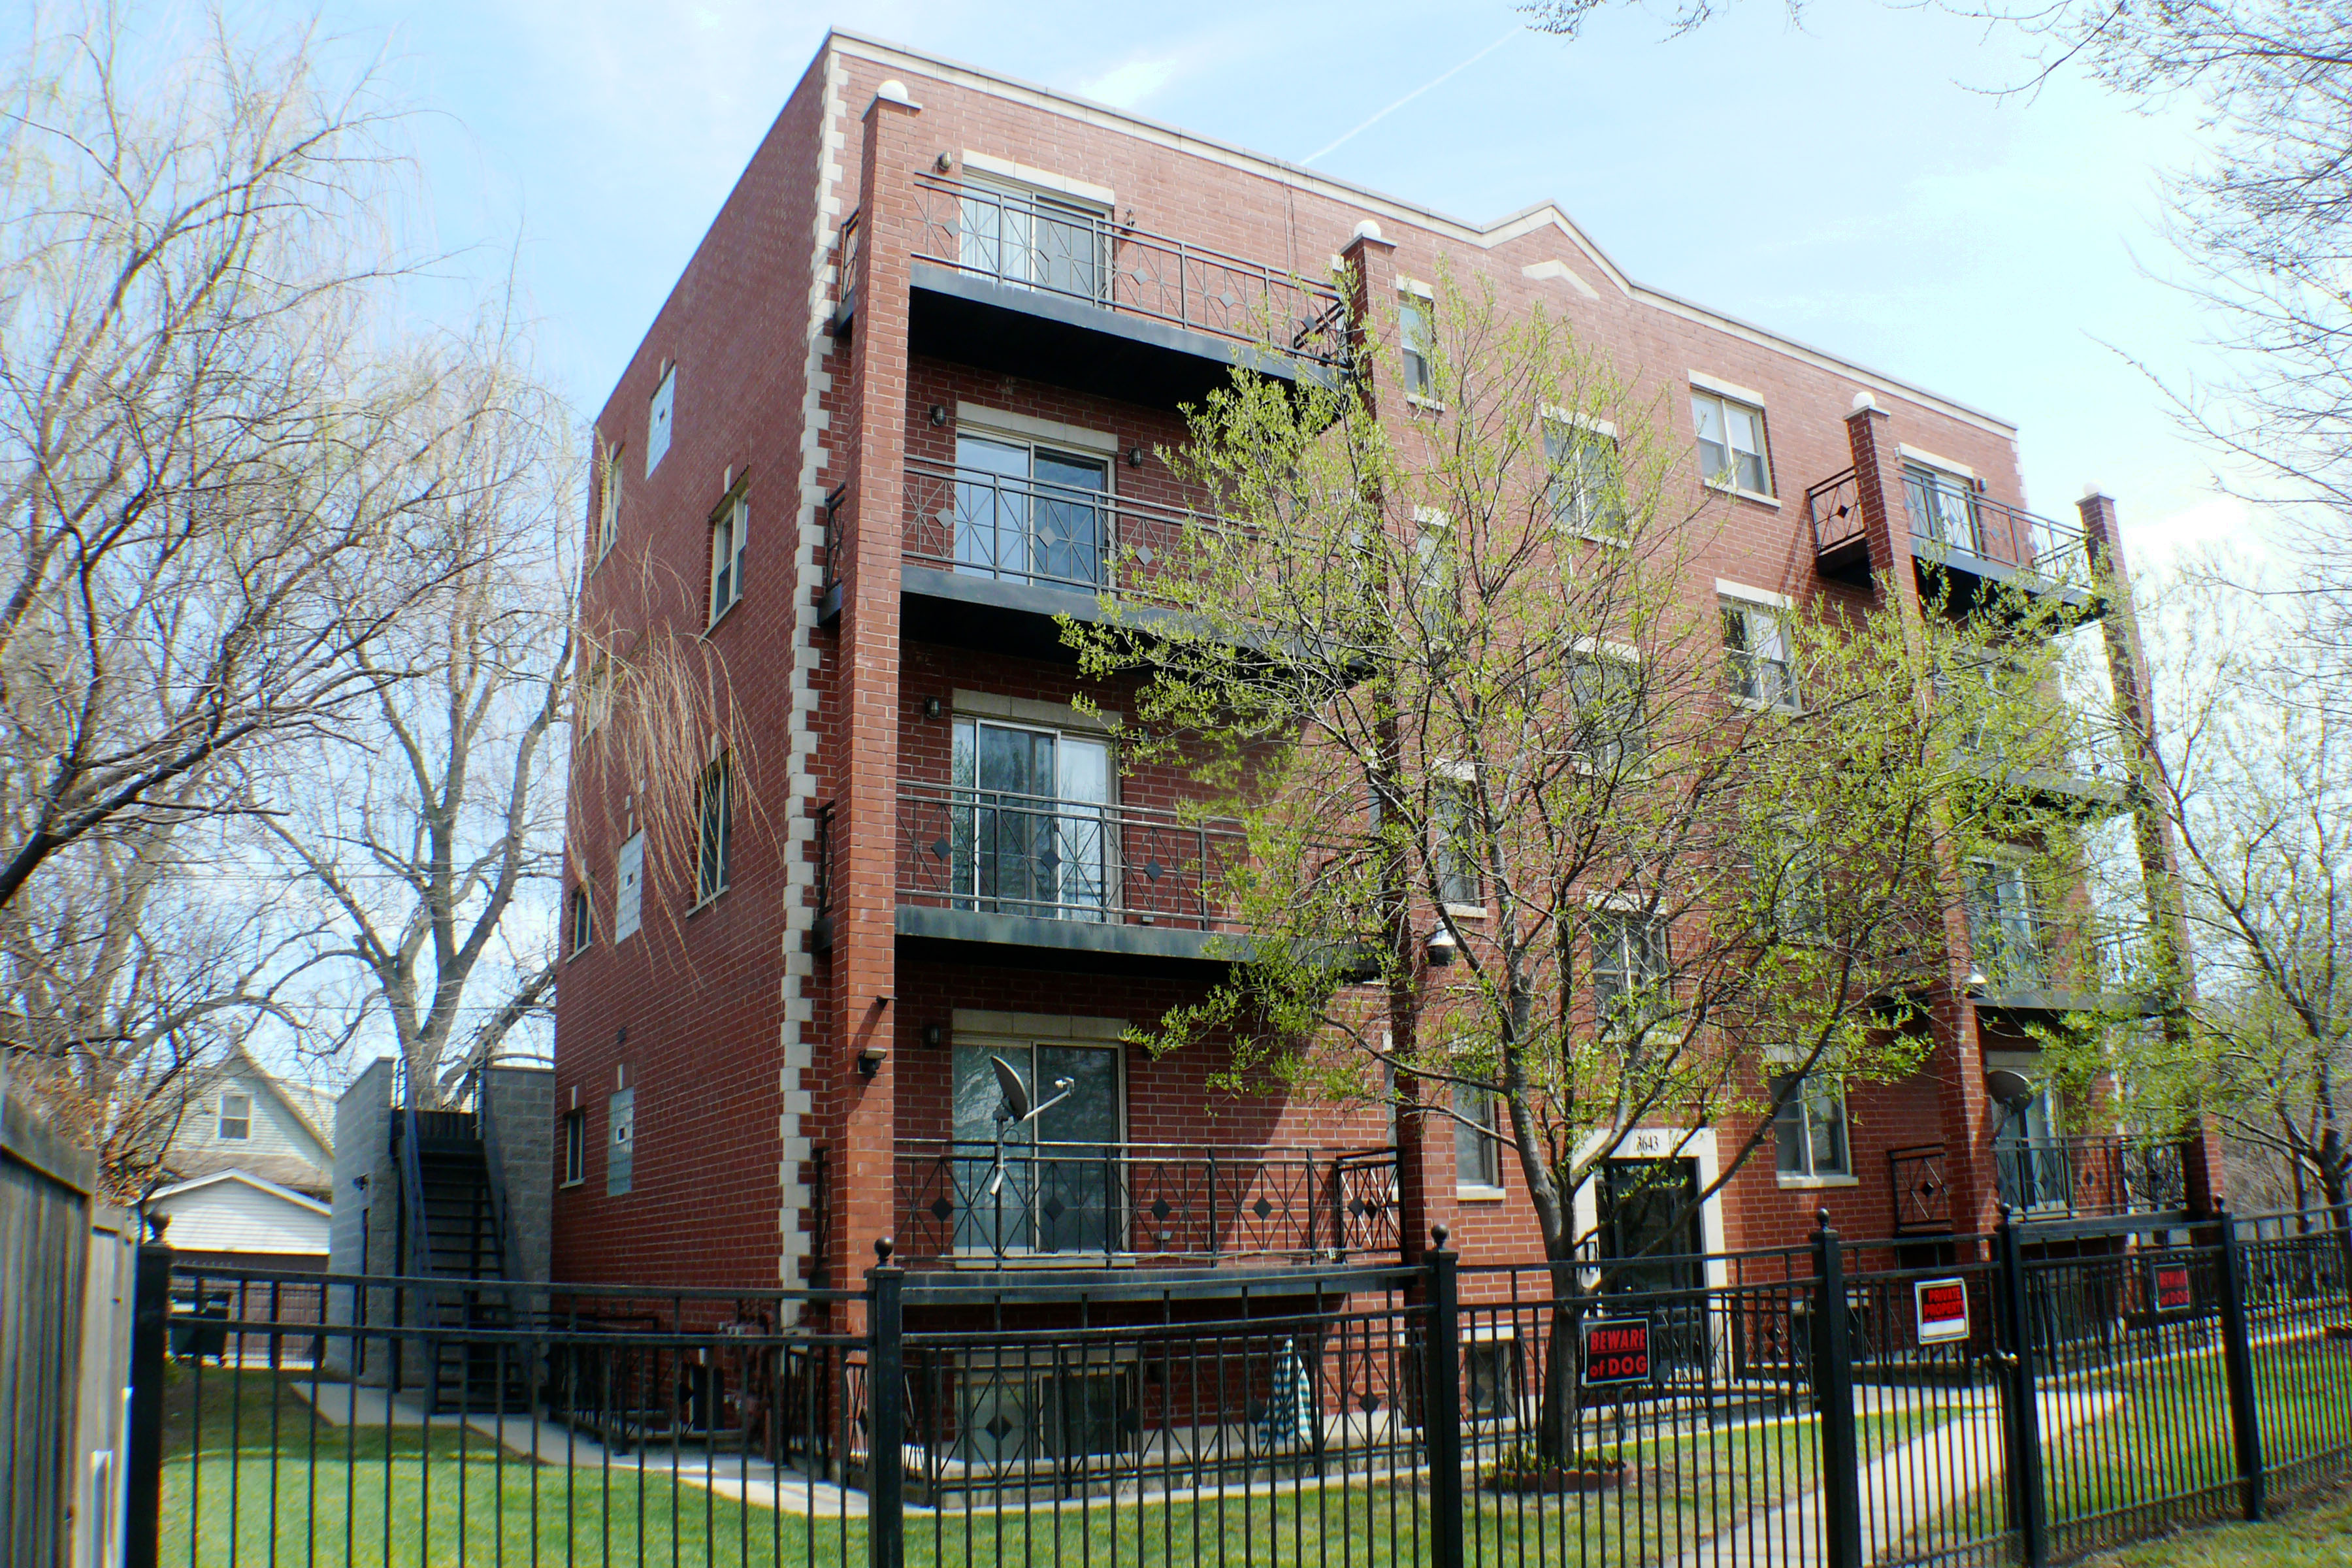 Chicago condo for sale an amazing space inside and out for Amazing houses inside and out